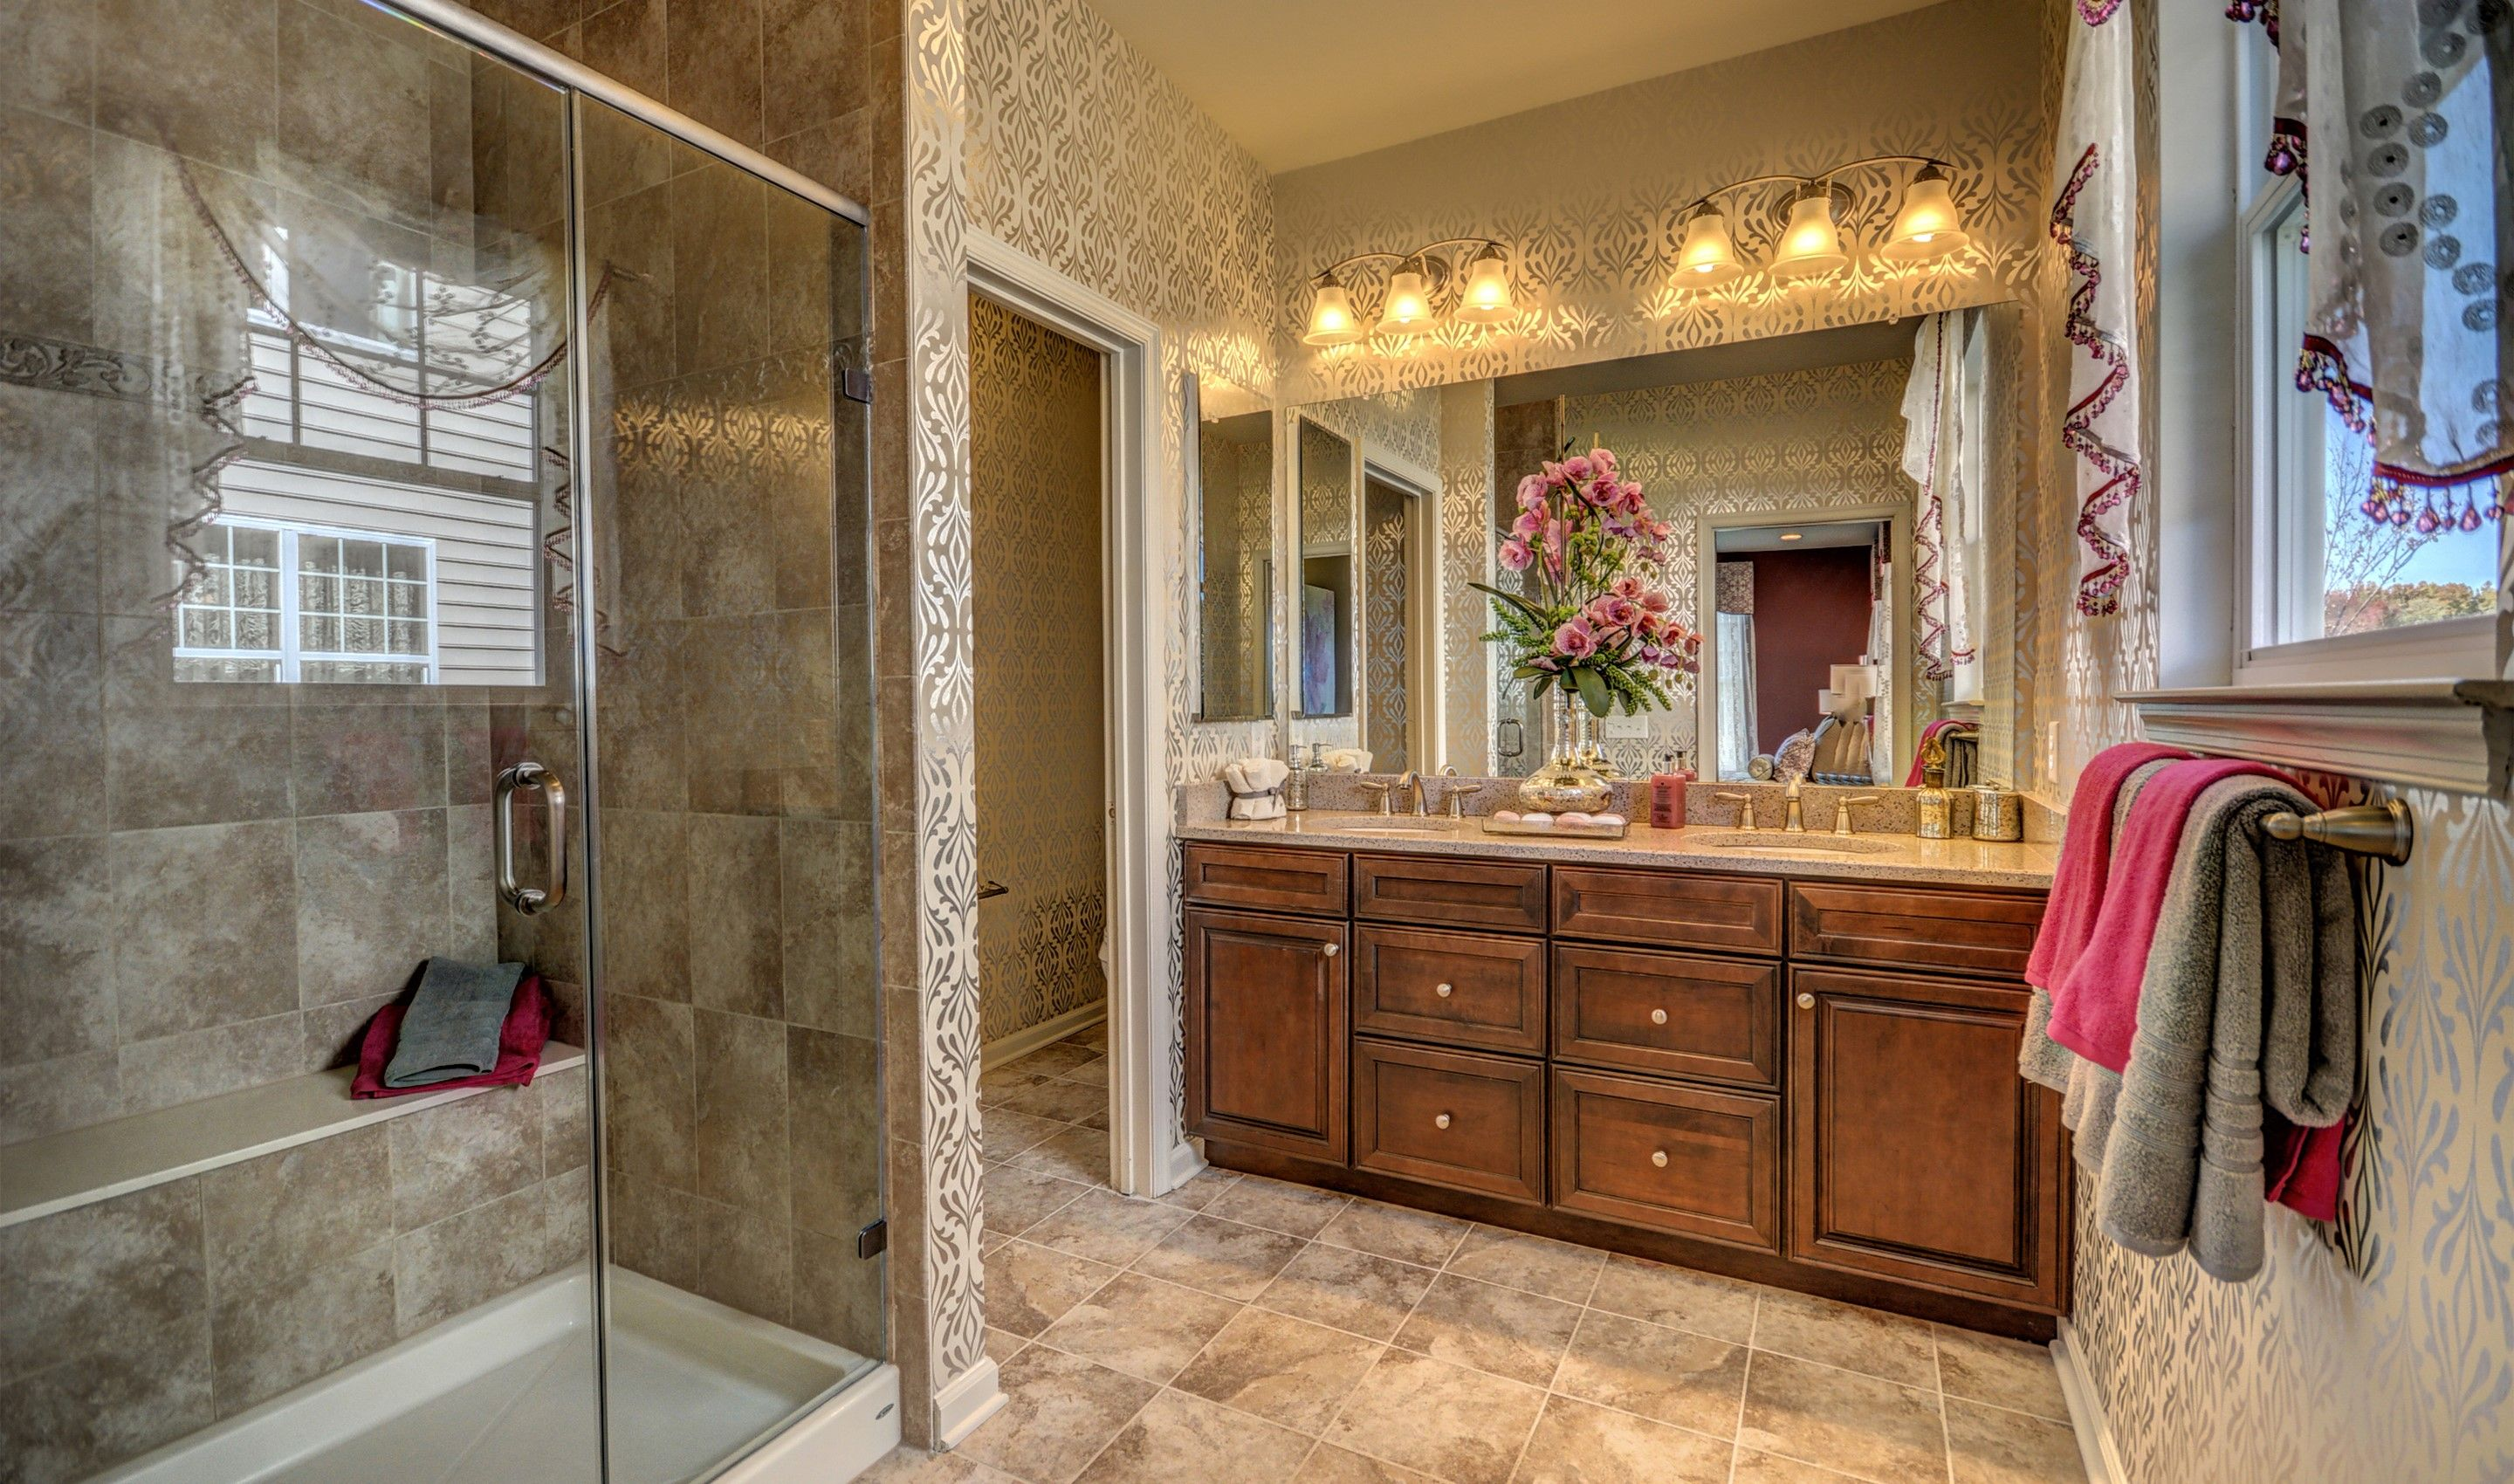 Bathroom featured in the Grenada By K. Hovnanian's® Four Seasons in Charleston, SC